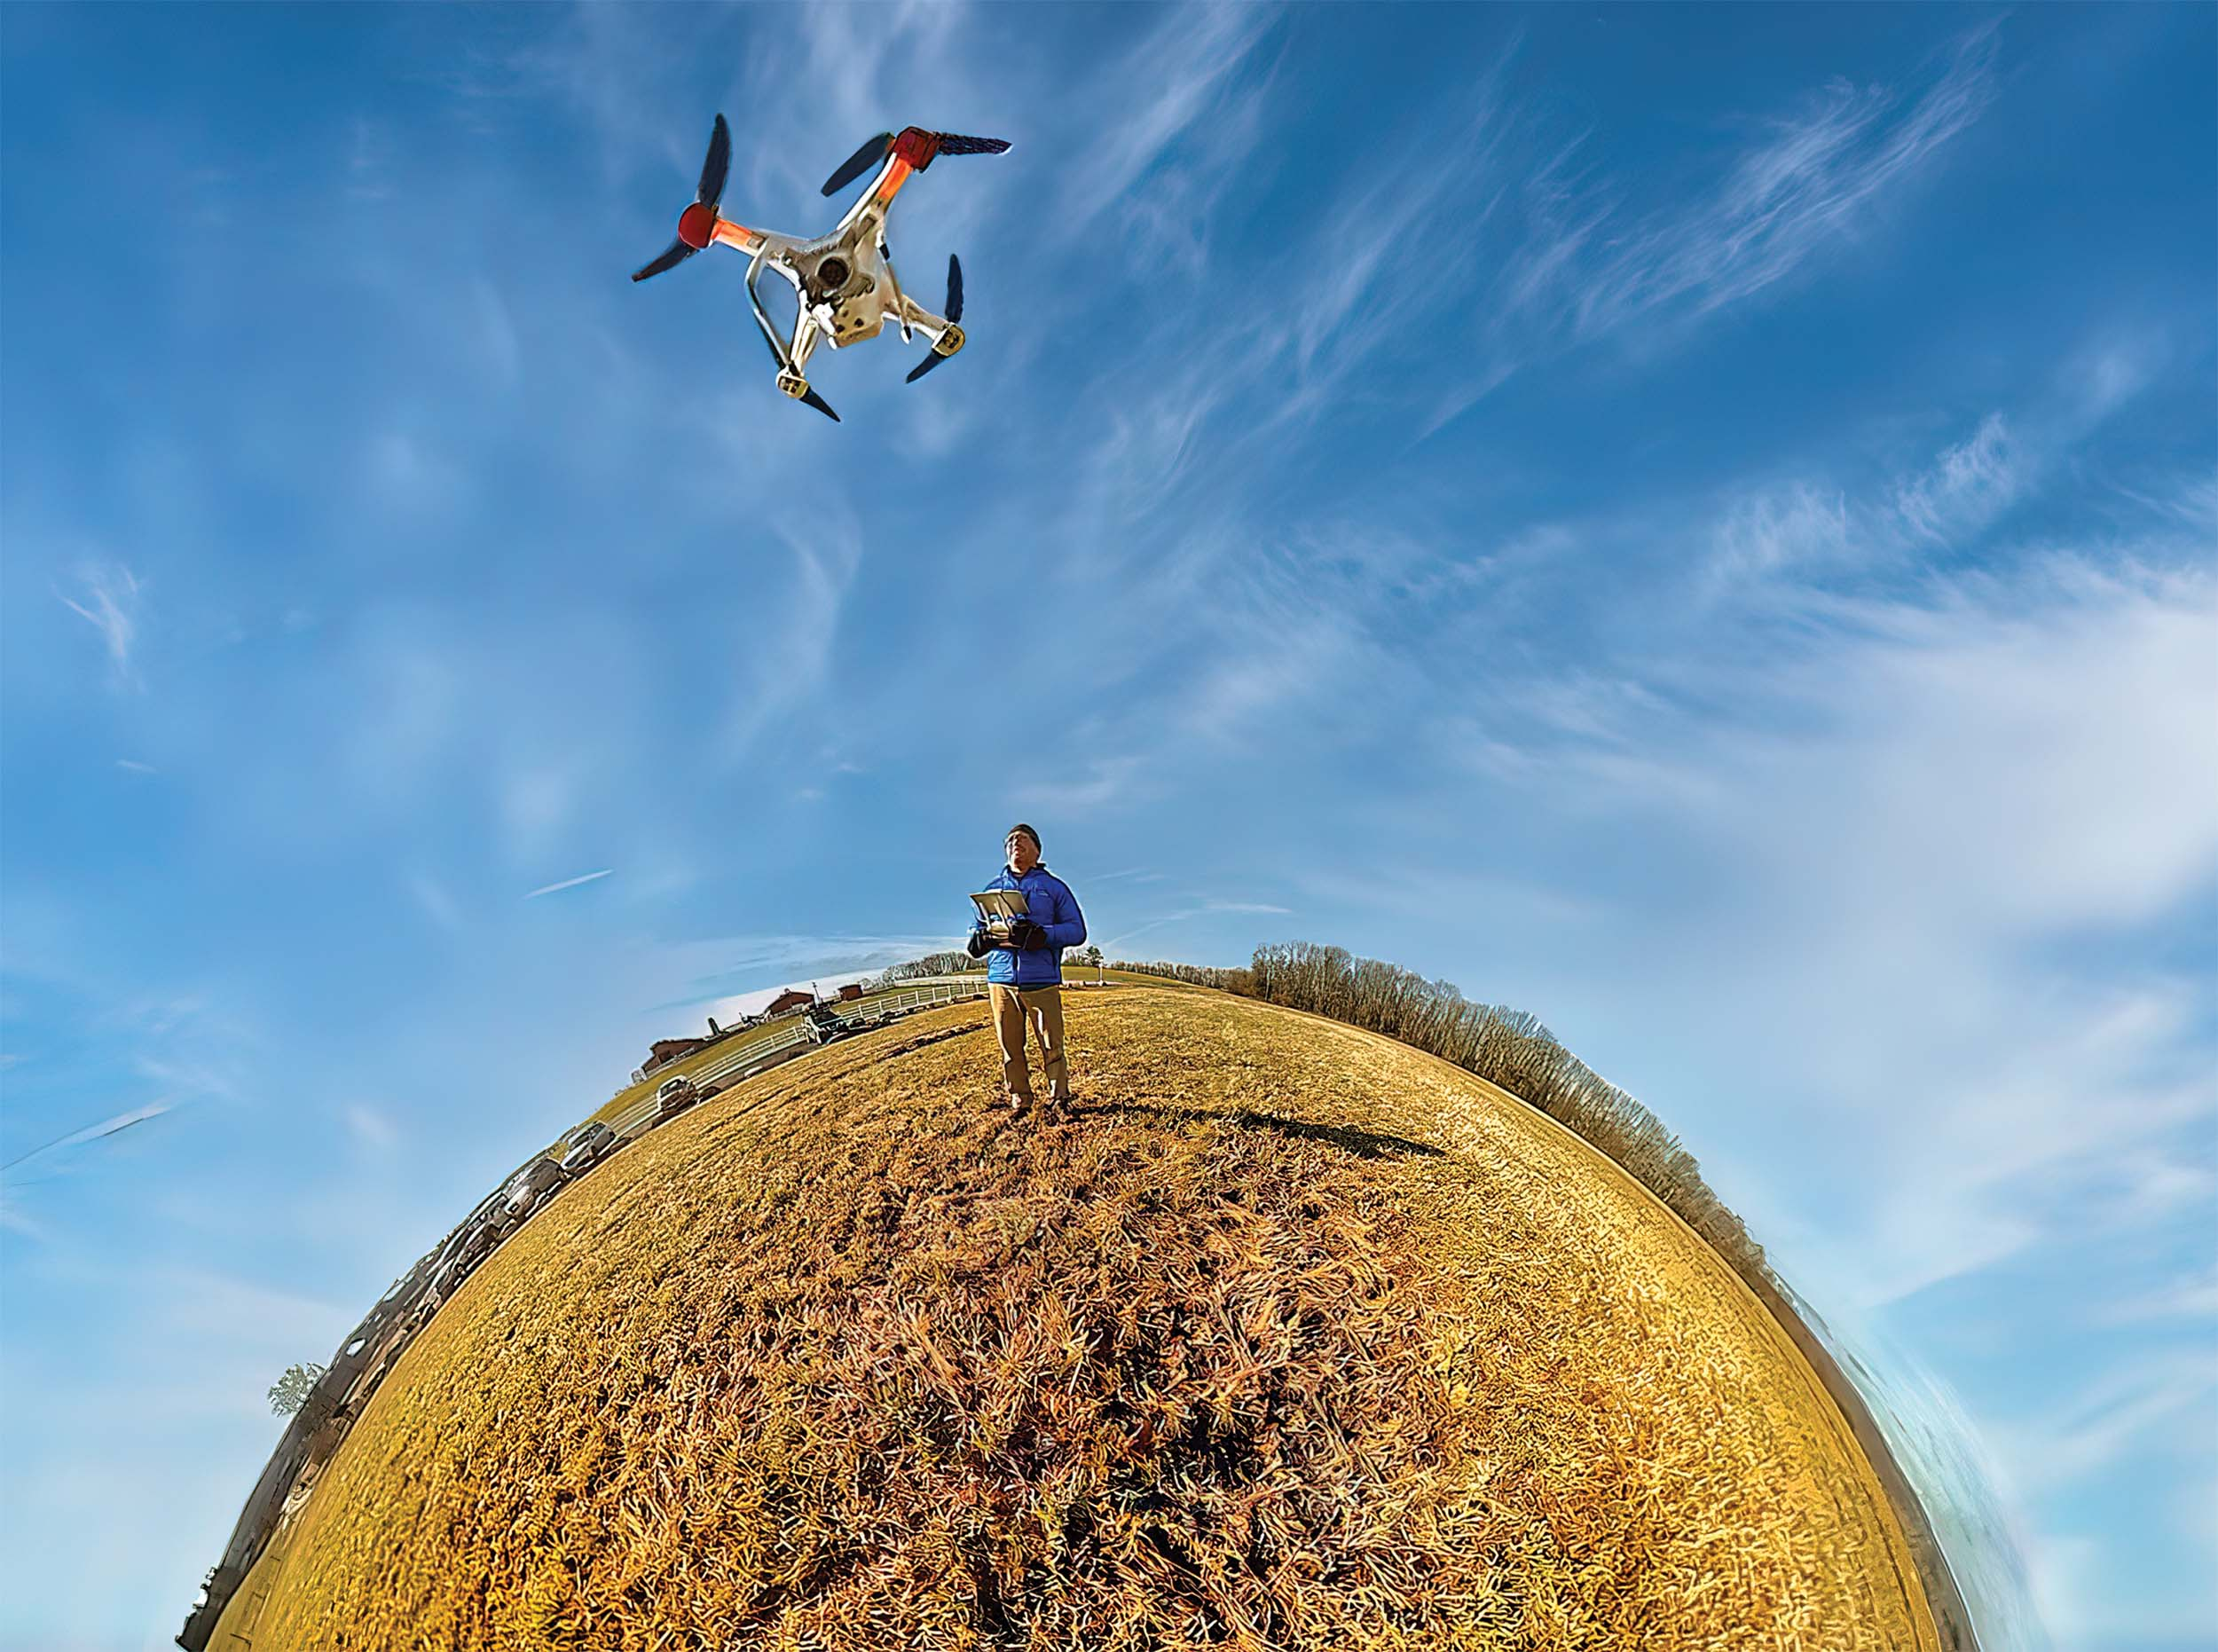 A warped lens view of a man piloting a drone